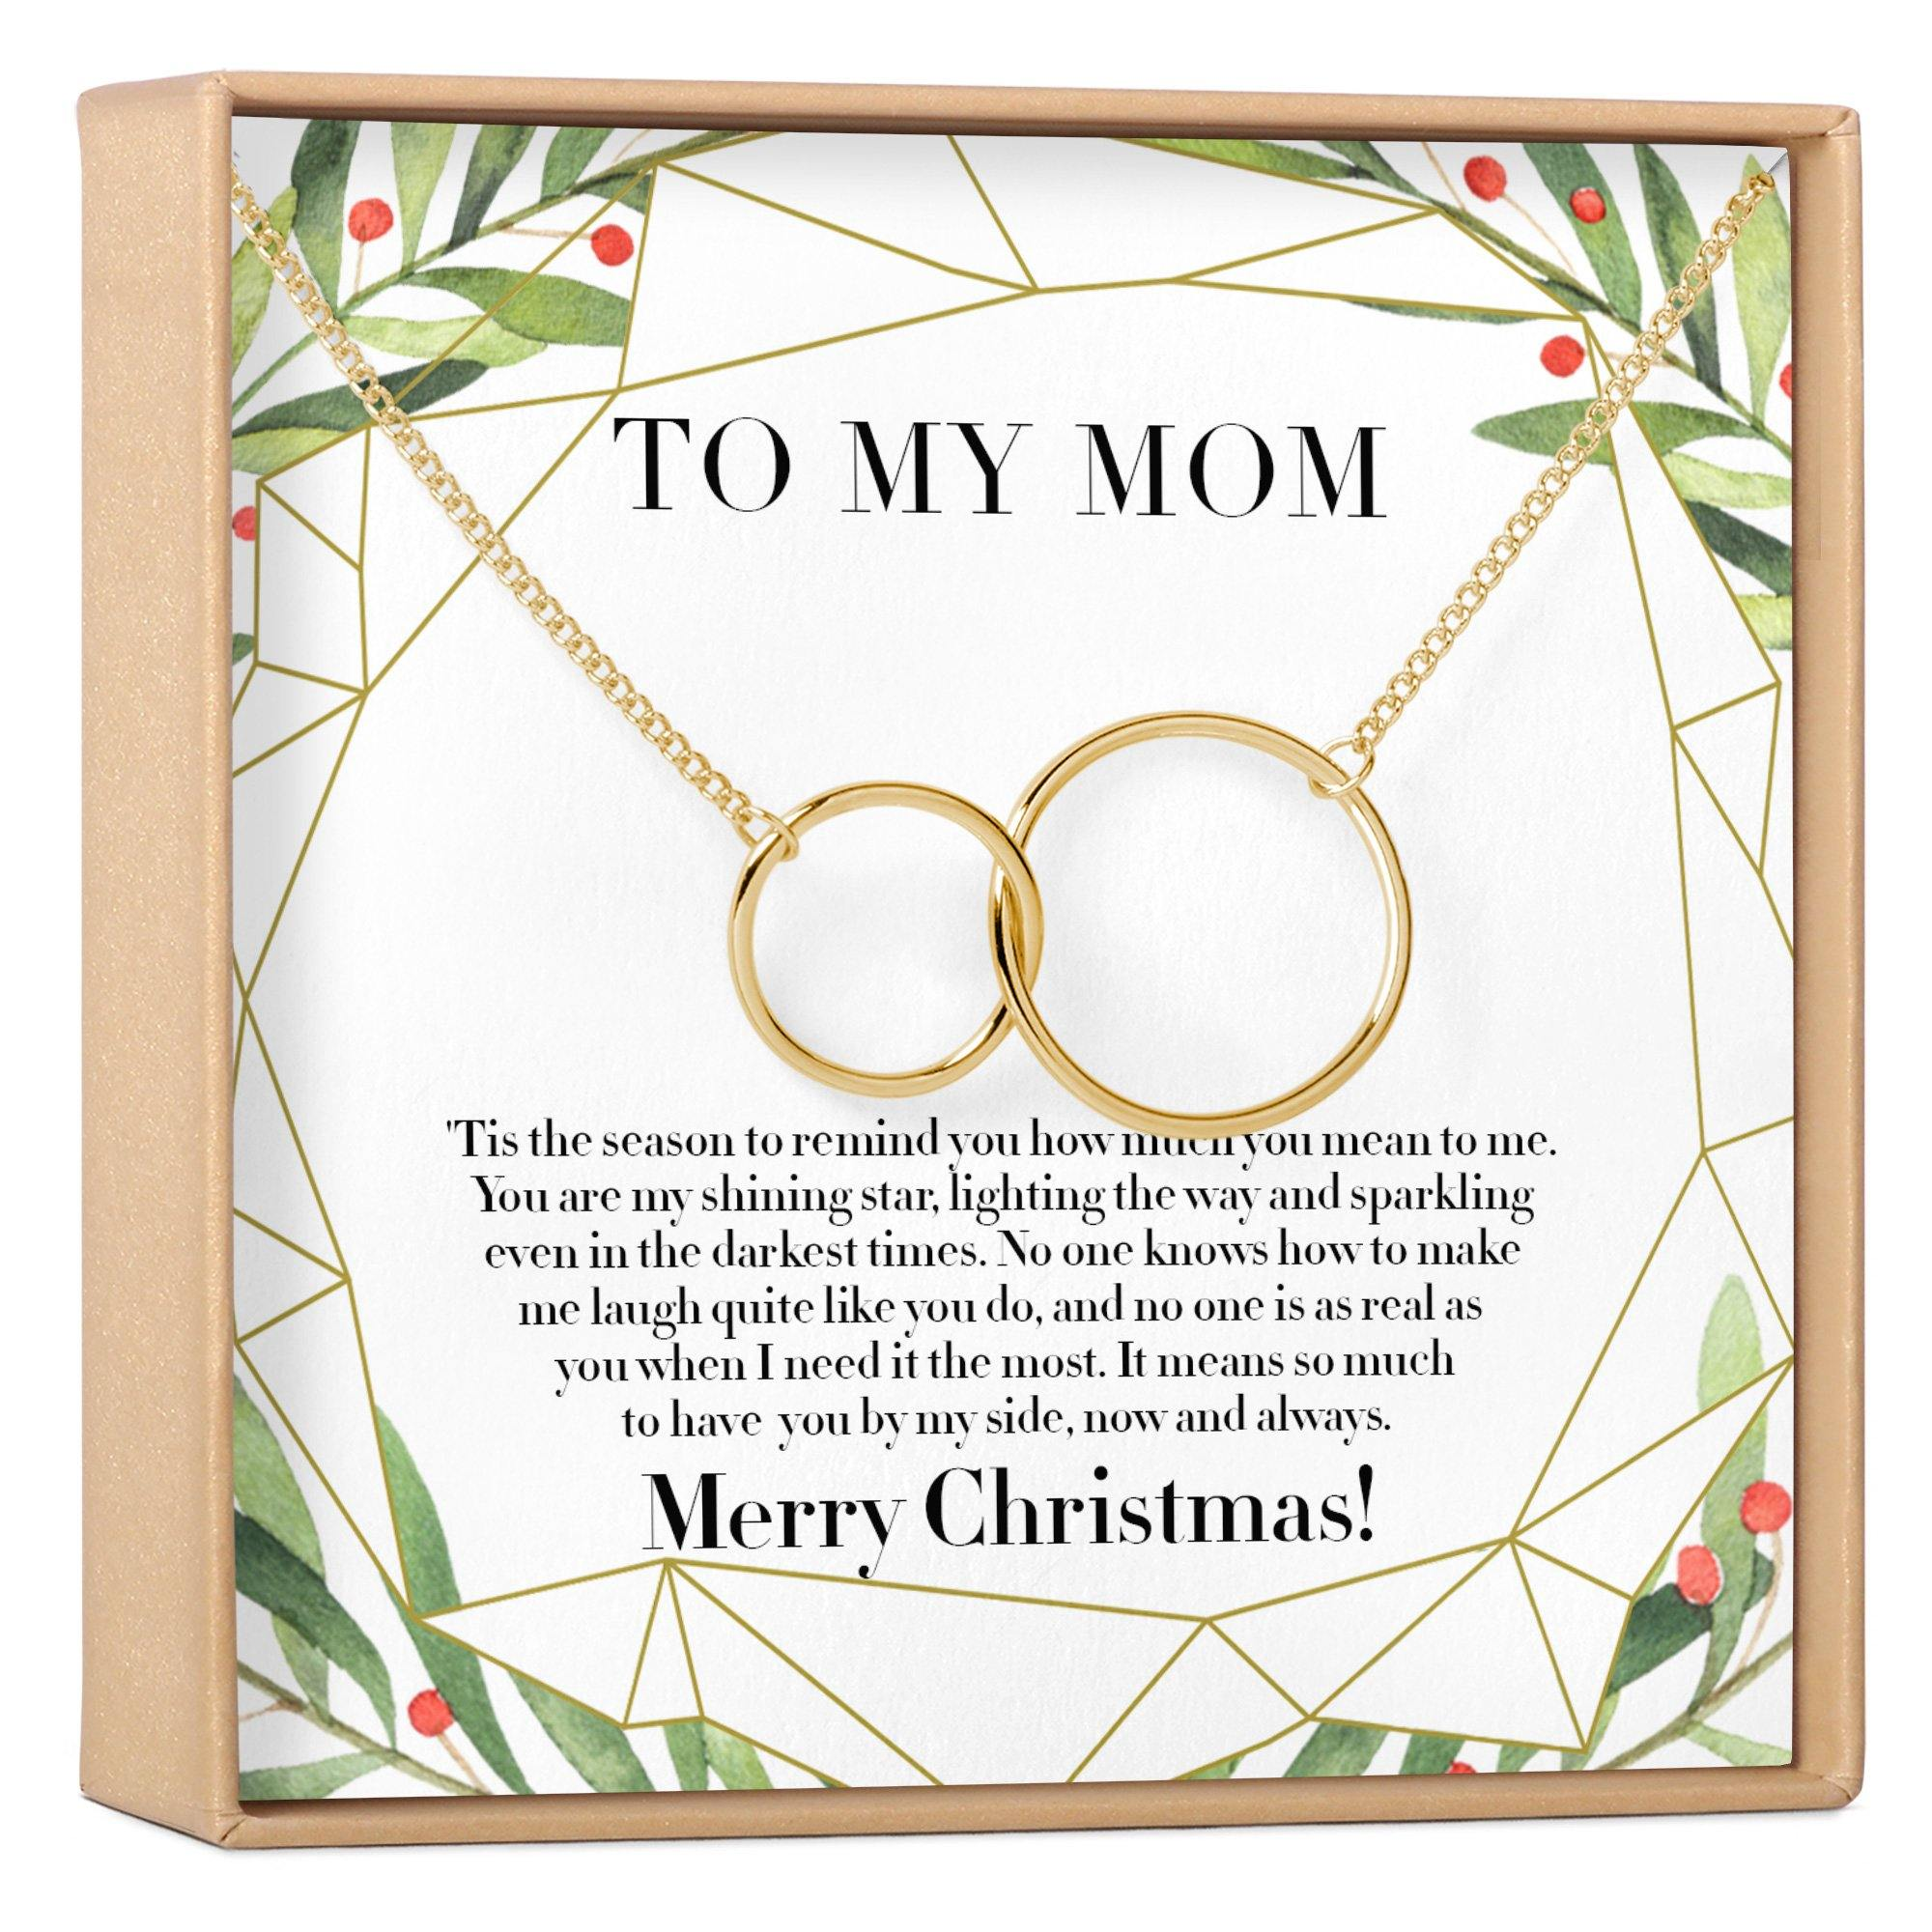 Christmas Gift For Mom Present Necklace Jewelry Xmas Gift Holiday Gift Gift Idea Mother Mom Gift Mother Daughter Gift 2 Interlocking Circles Dear Ava